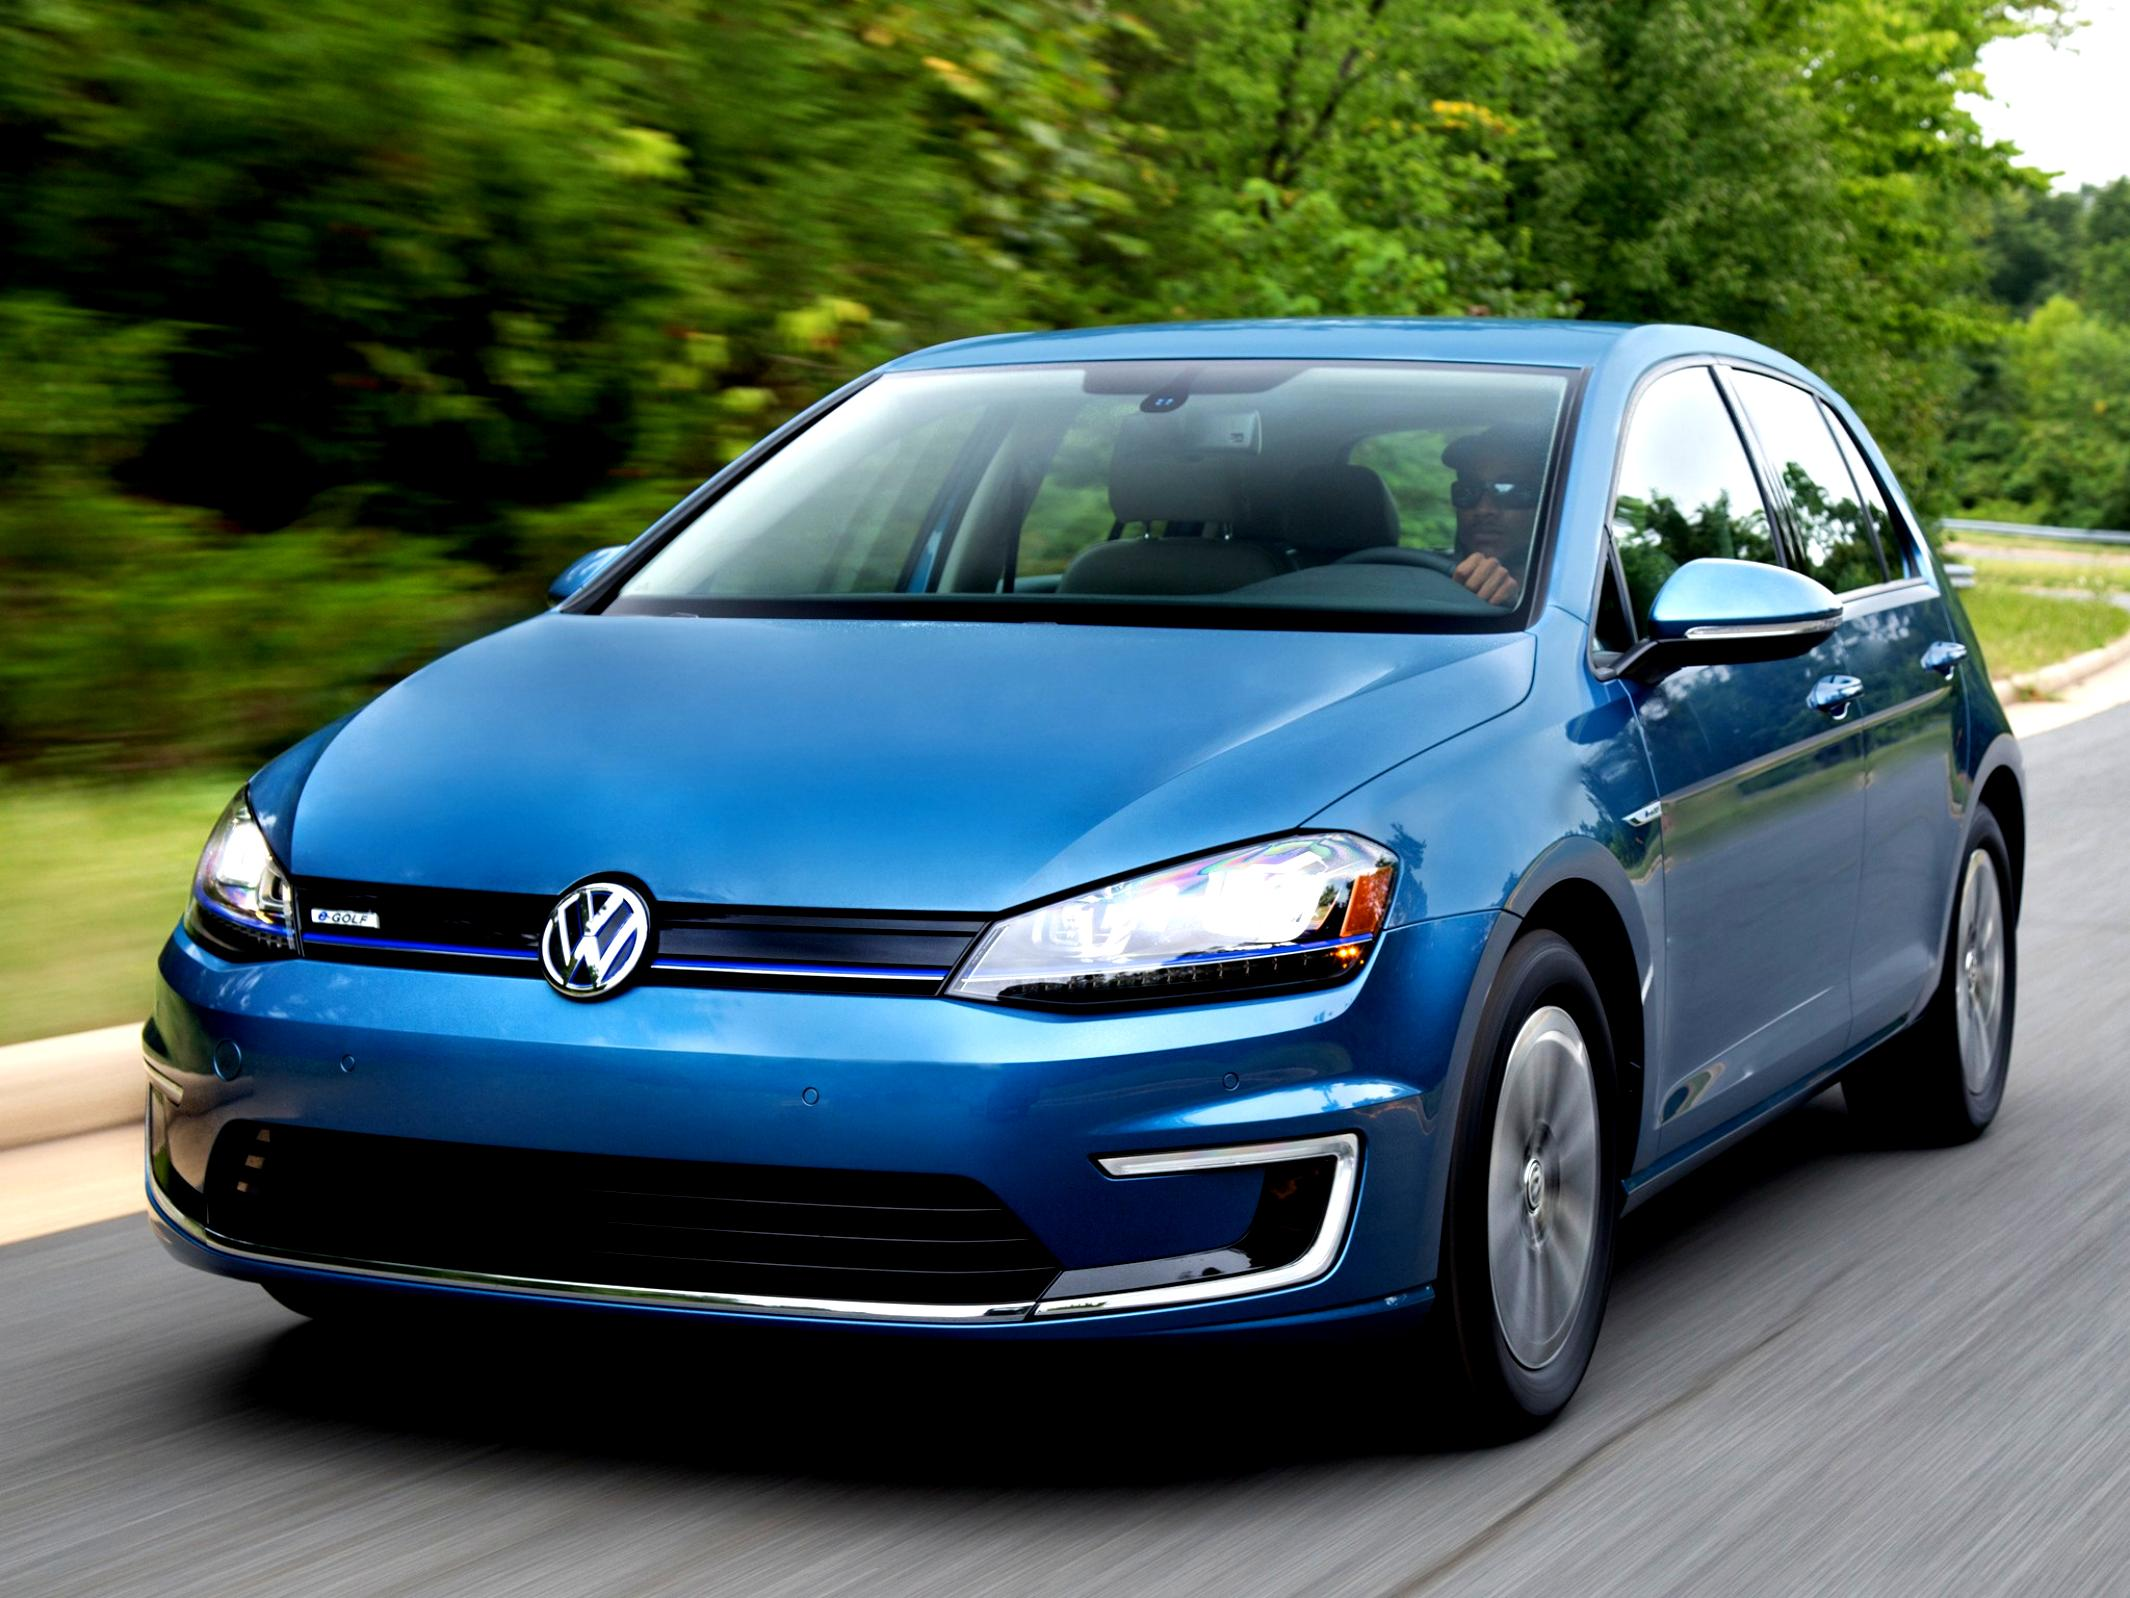 Volkswagen E-Golf 2014 #51